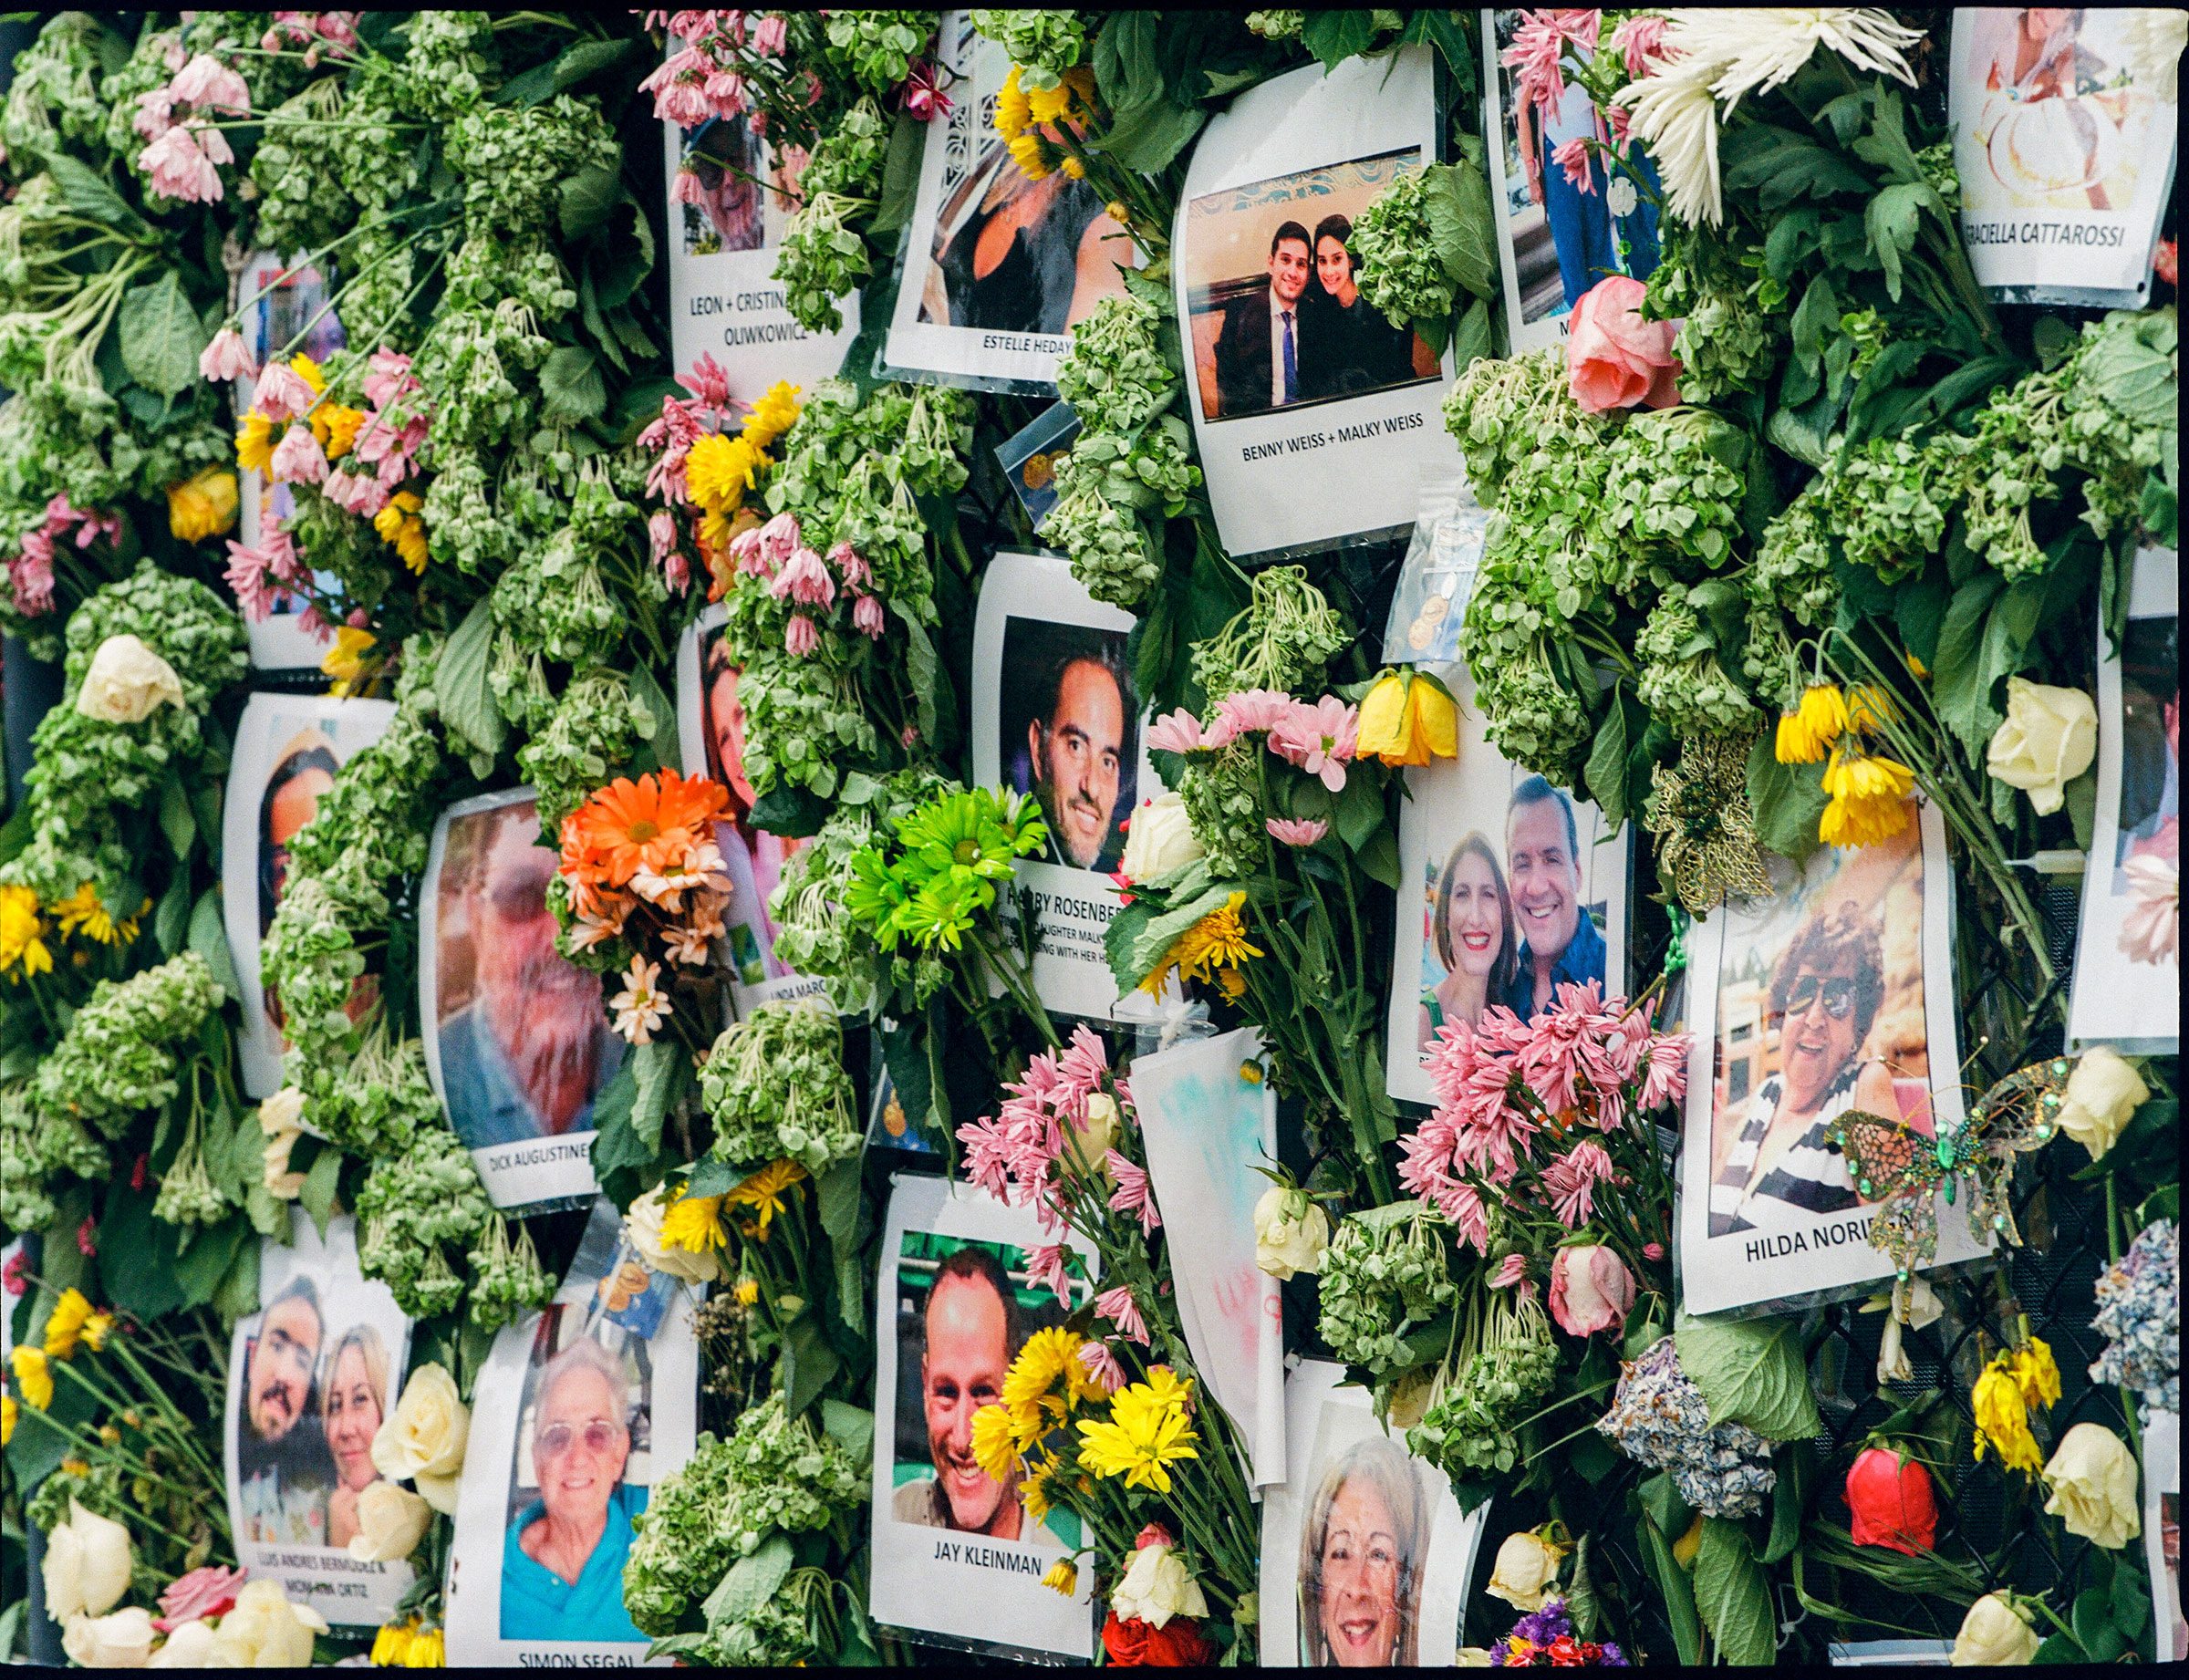 A memorial wall, set up on a nearby tennis court fence, full of posters of missing victims on June 30.